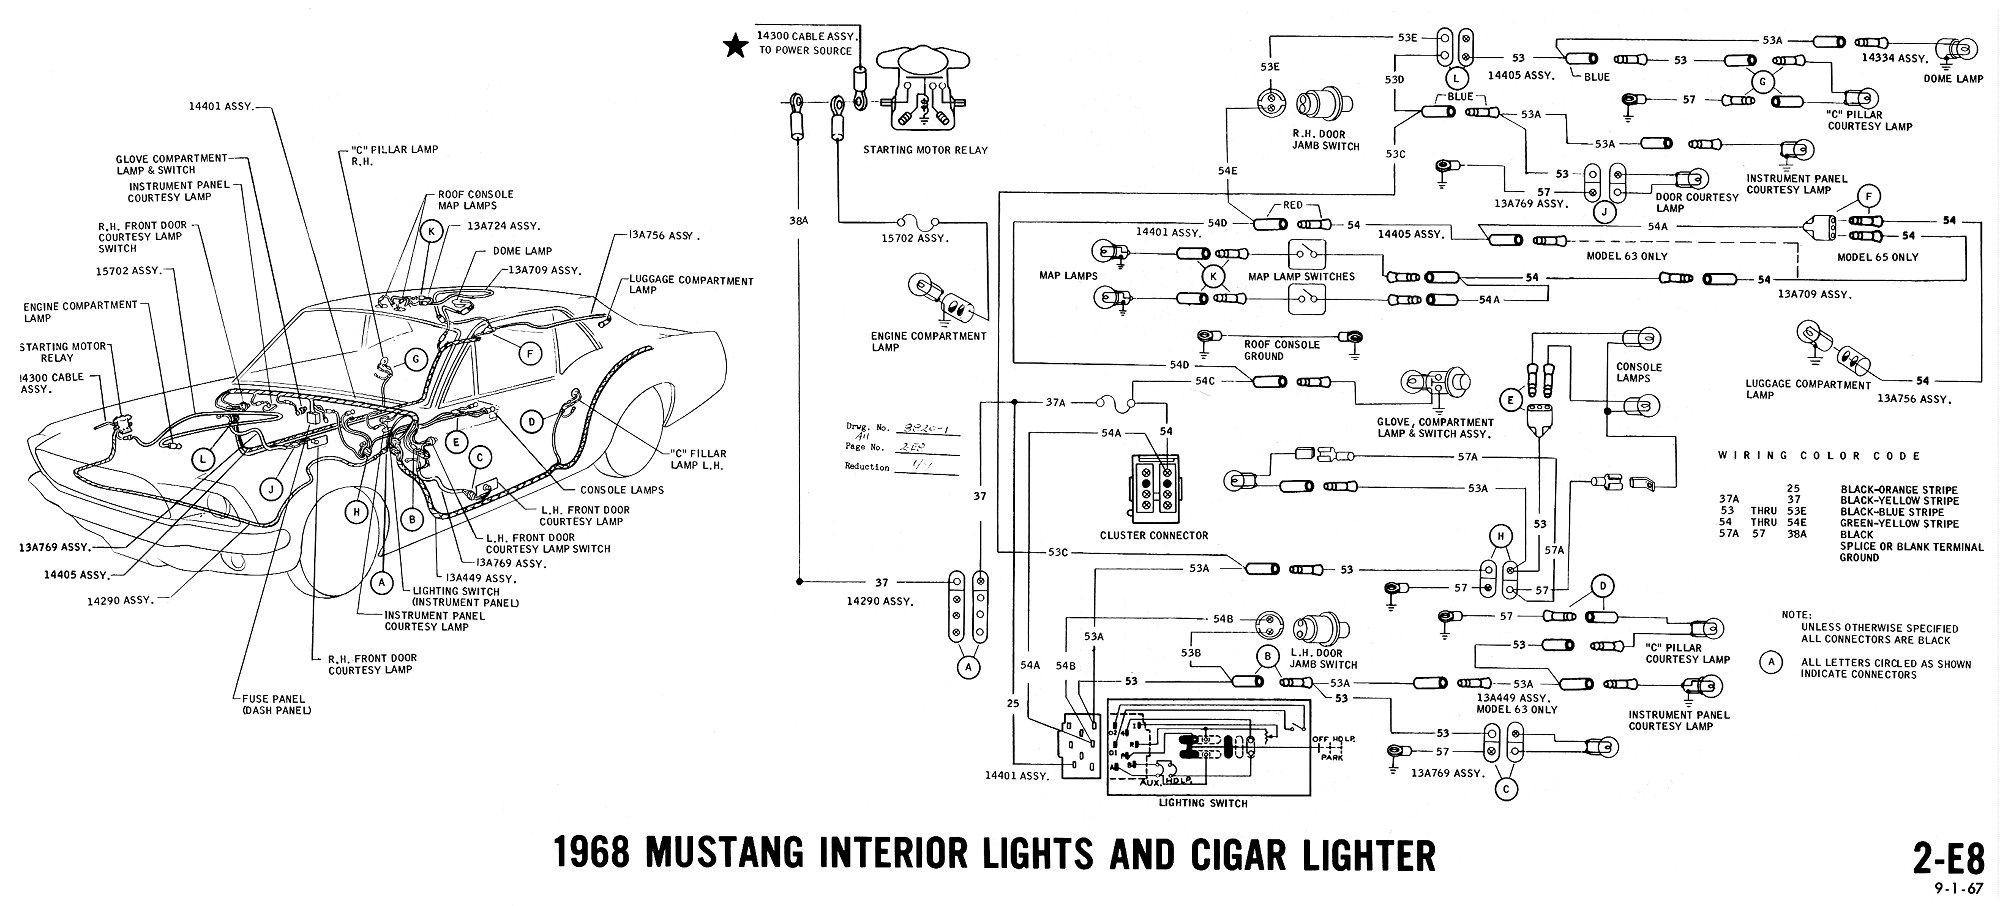 66 mustang wiring harness diagram wiring diagram online rh 18 1 17 tokyo running sushi de 2011 Mustang Headlight Wiring Diagram 2011 Mustang Headlight Wiring Diagram